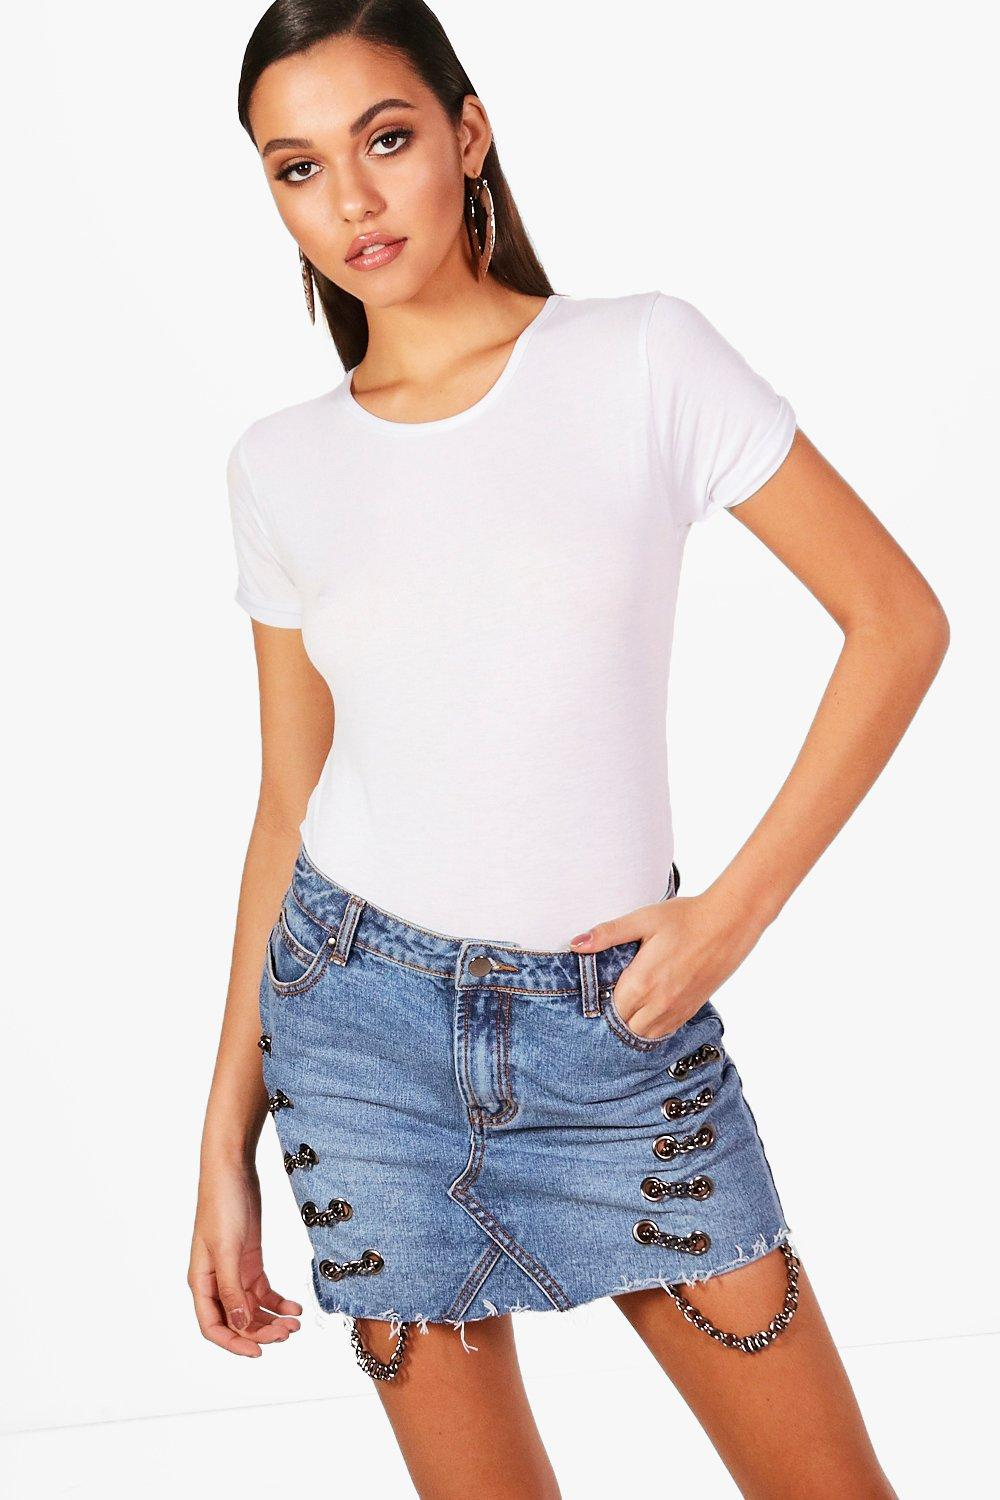 Find great deals on eBay for woman body shirt. Shop with confidence.